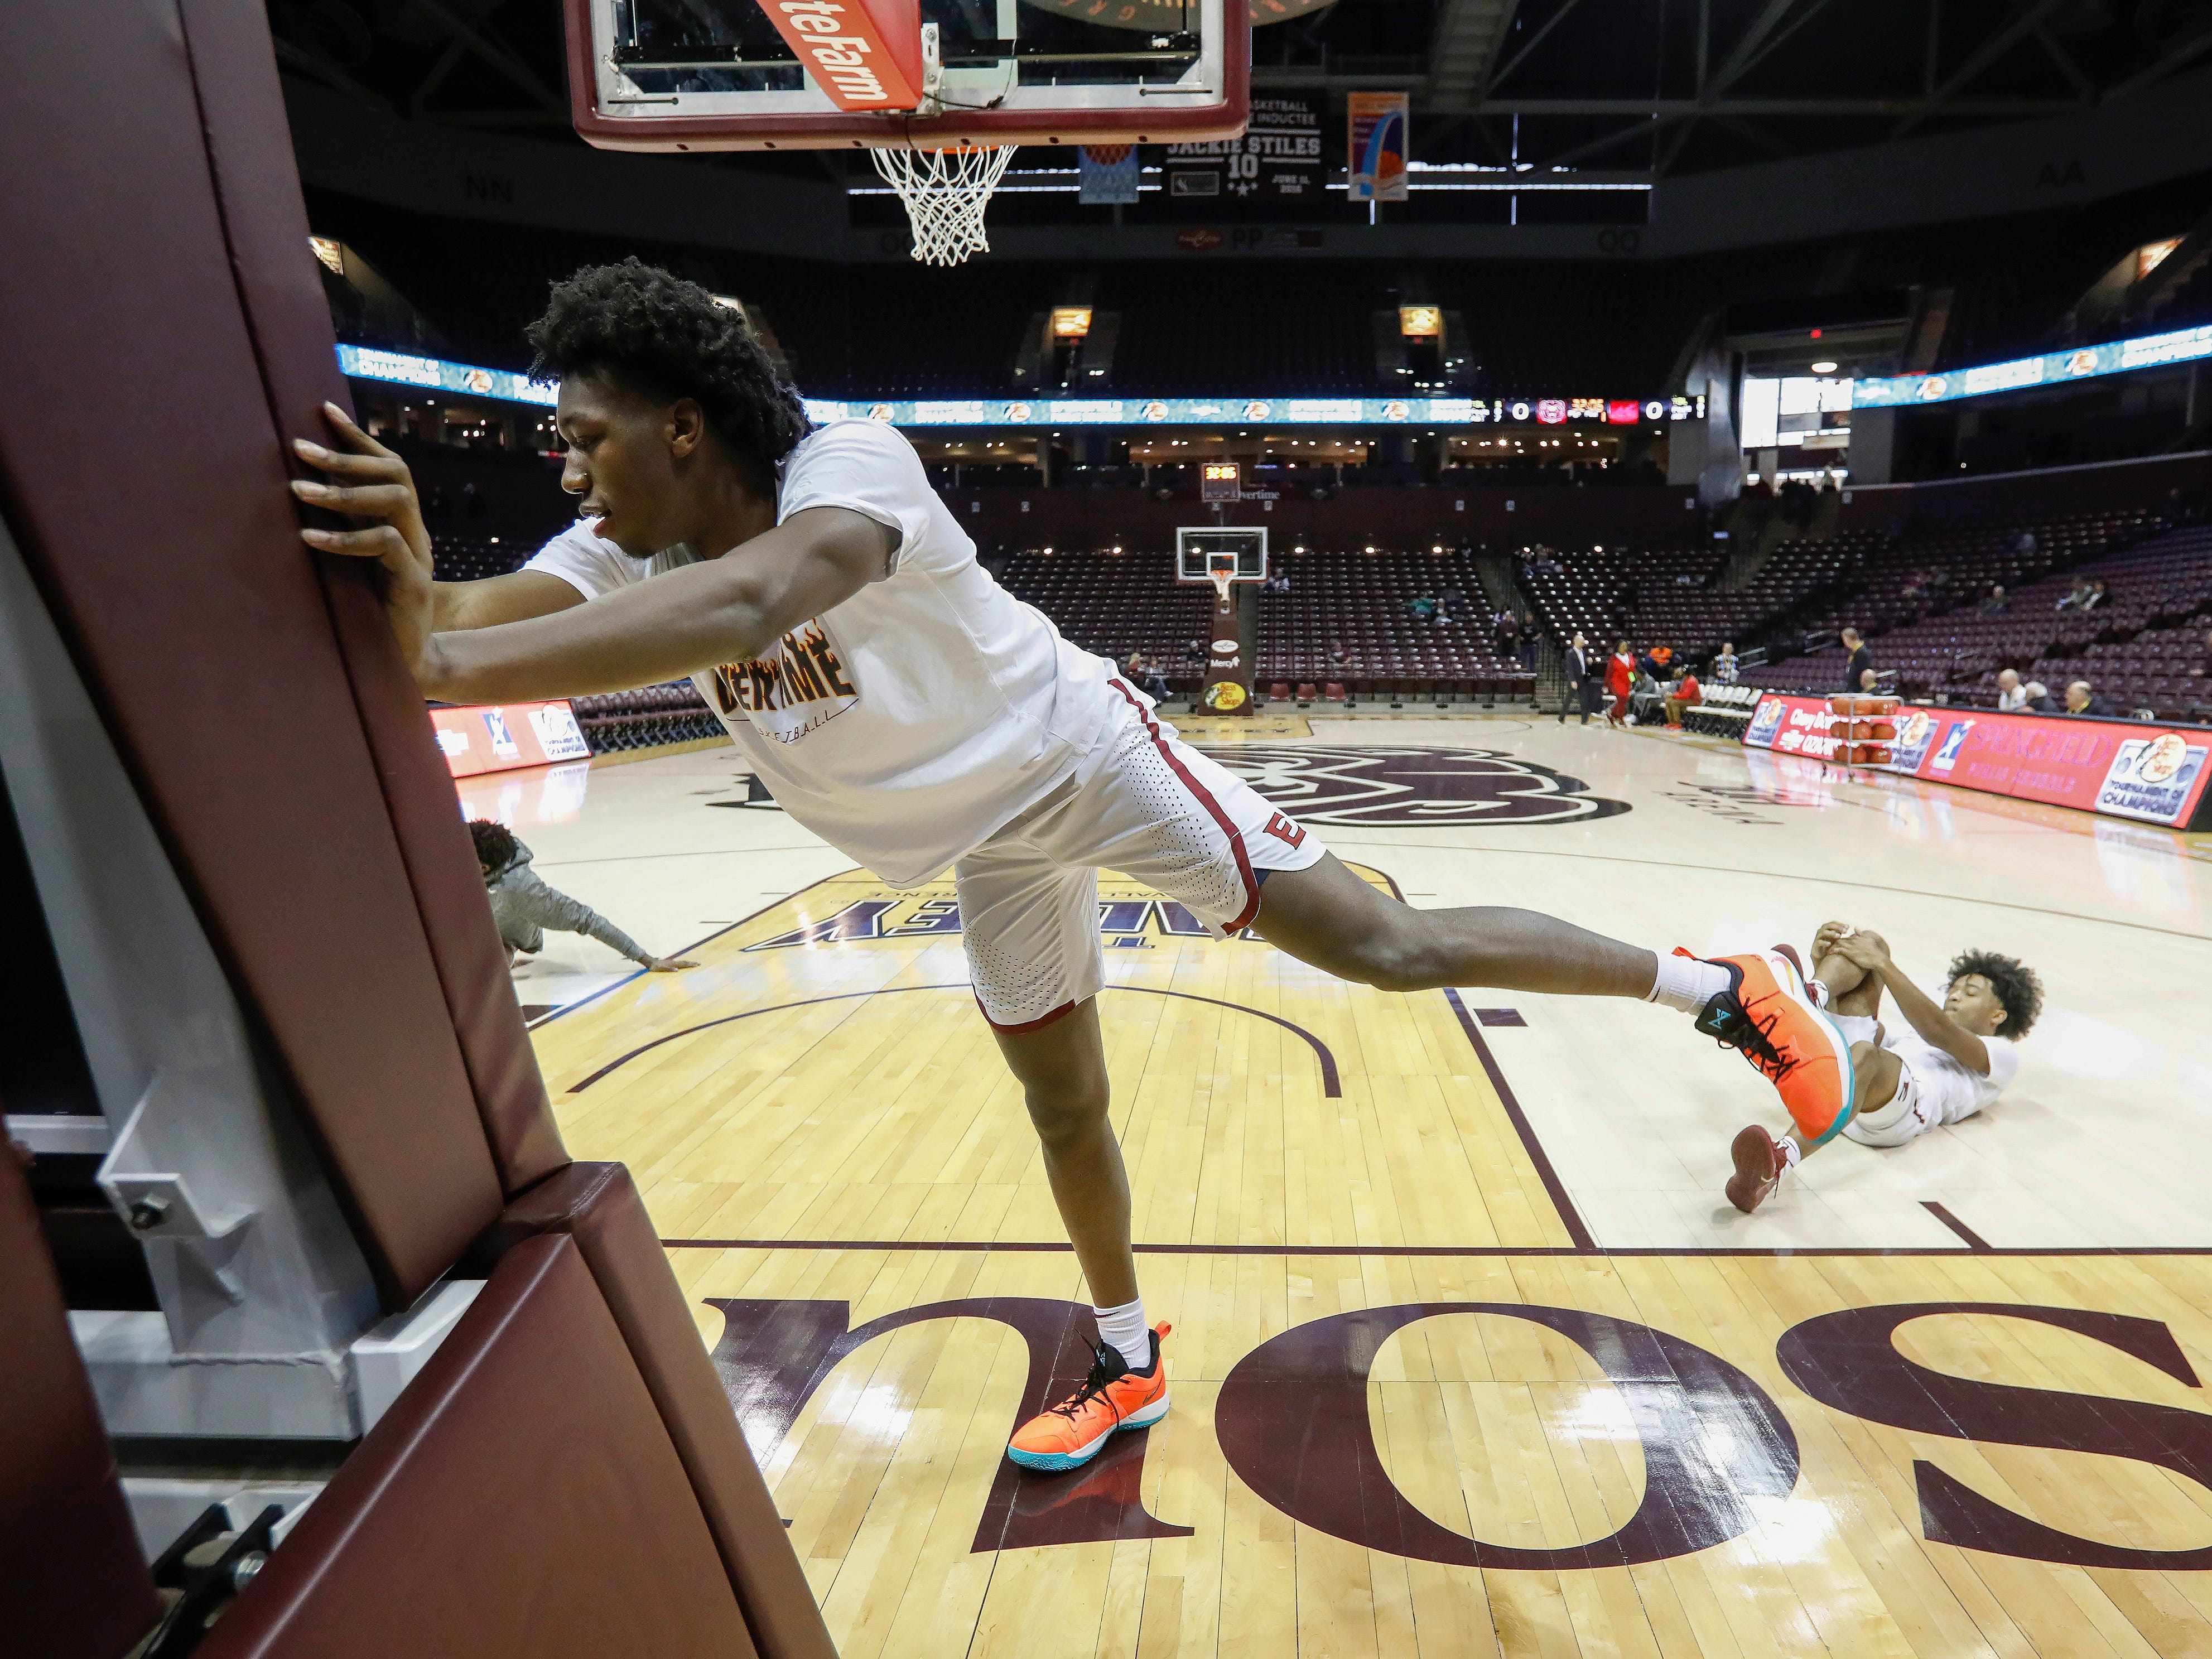 James Wiseman, of Memphis East High School, warms up before his team's game in the Bass Pro Shops Tournament of Champions at JQH Arena on Thursday, Jan. 17, 2019.